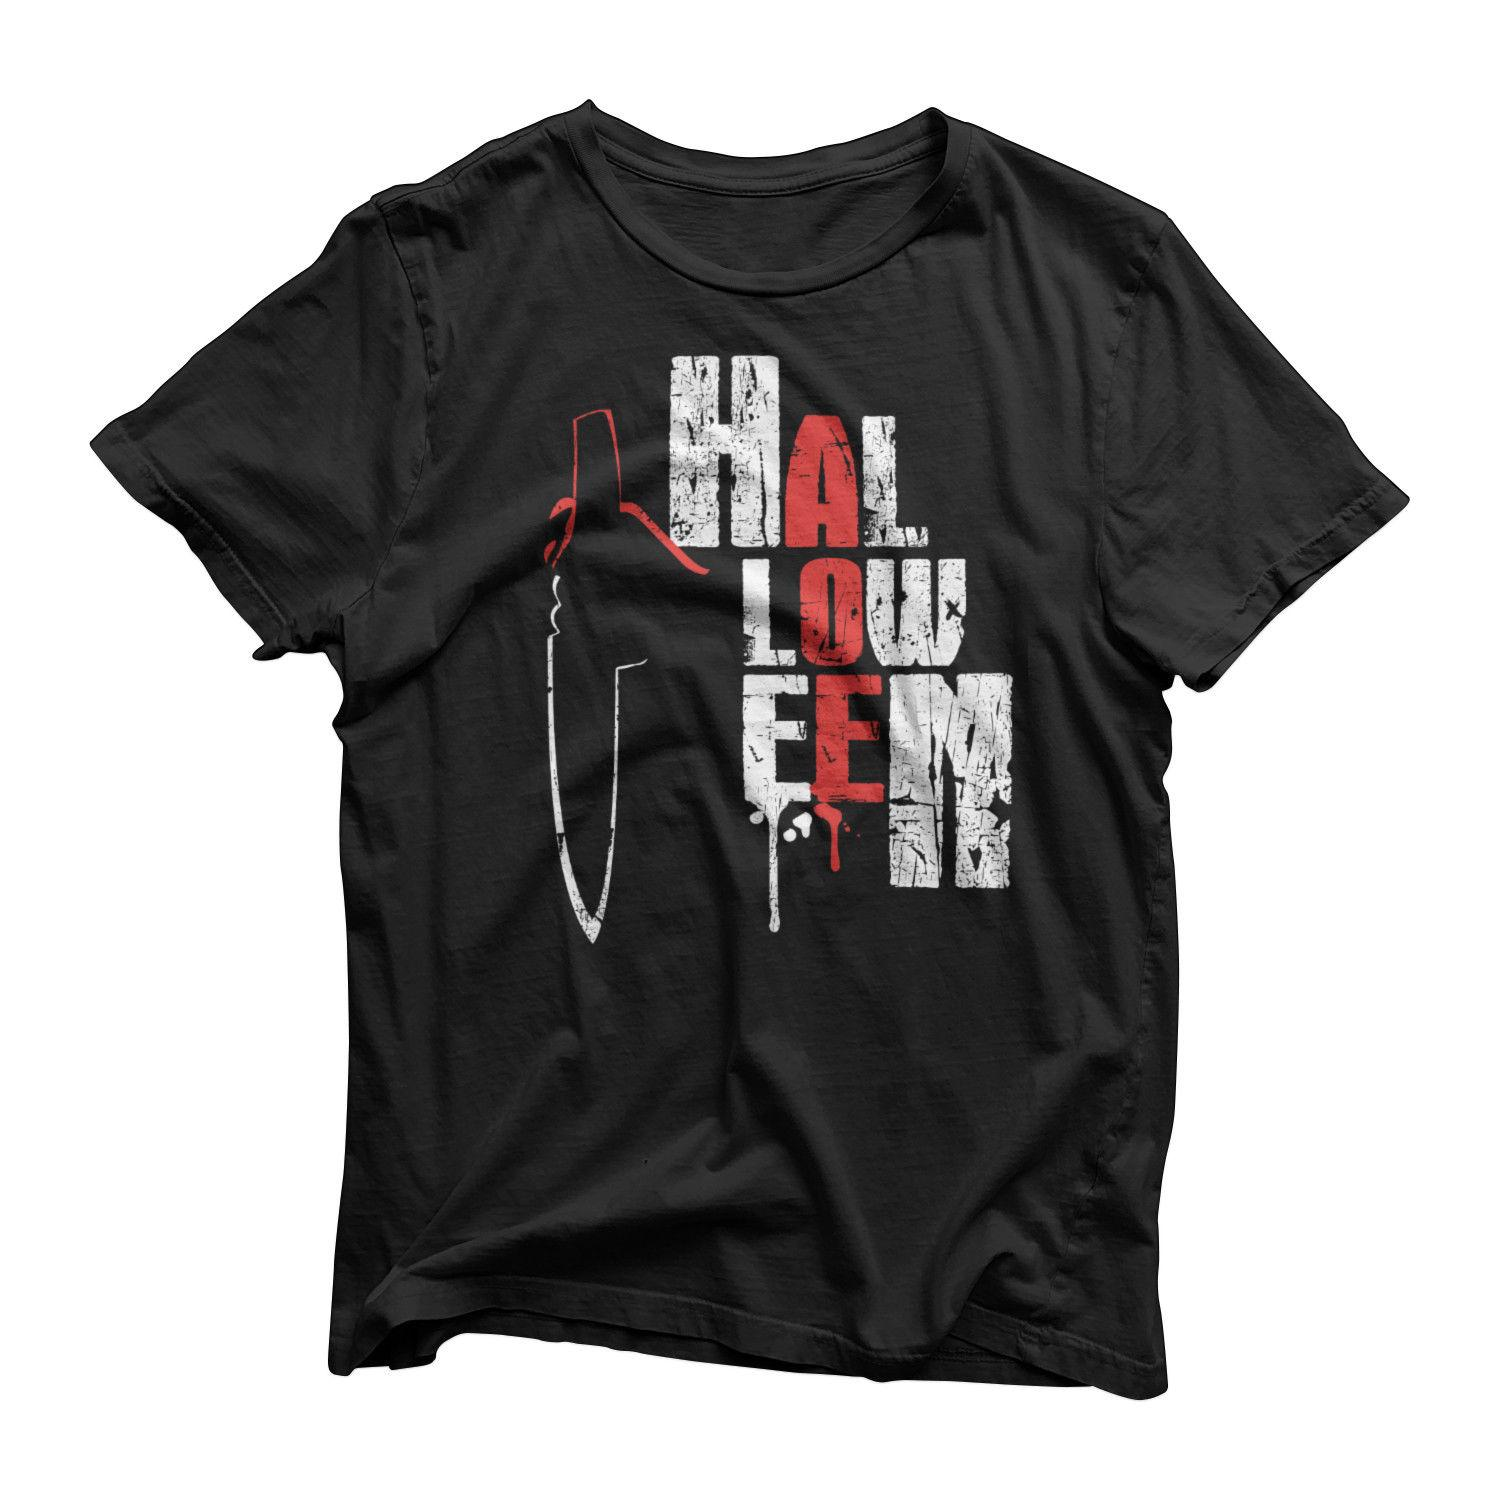 Halloween 2018 Michael Myers Knife.Michael Myers Scary Knife Halloween Film Movie Inspired Horror T Shirt Top 2018 New Brand Mens T Shirt Cotton Short Sleeve Print